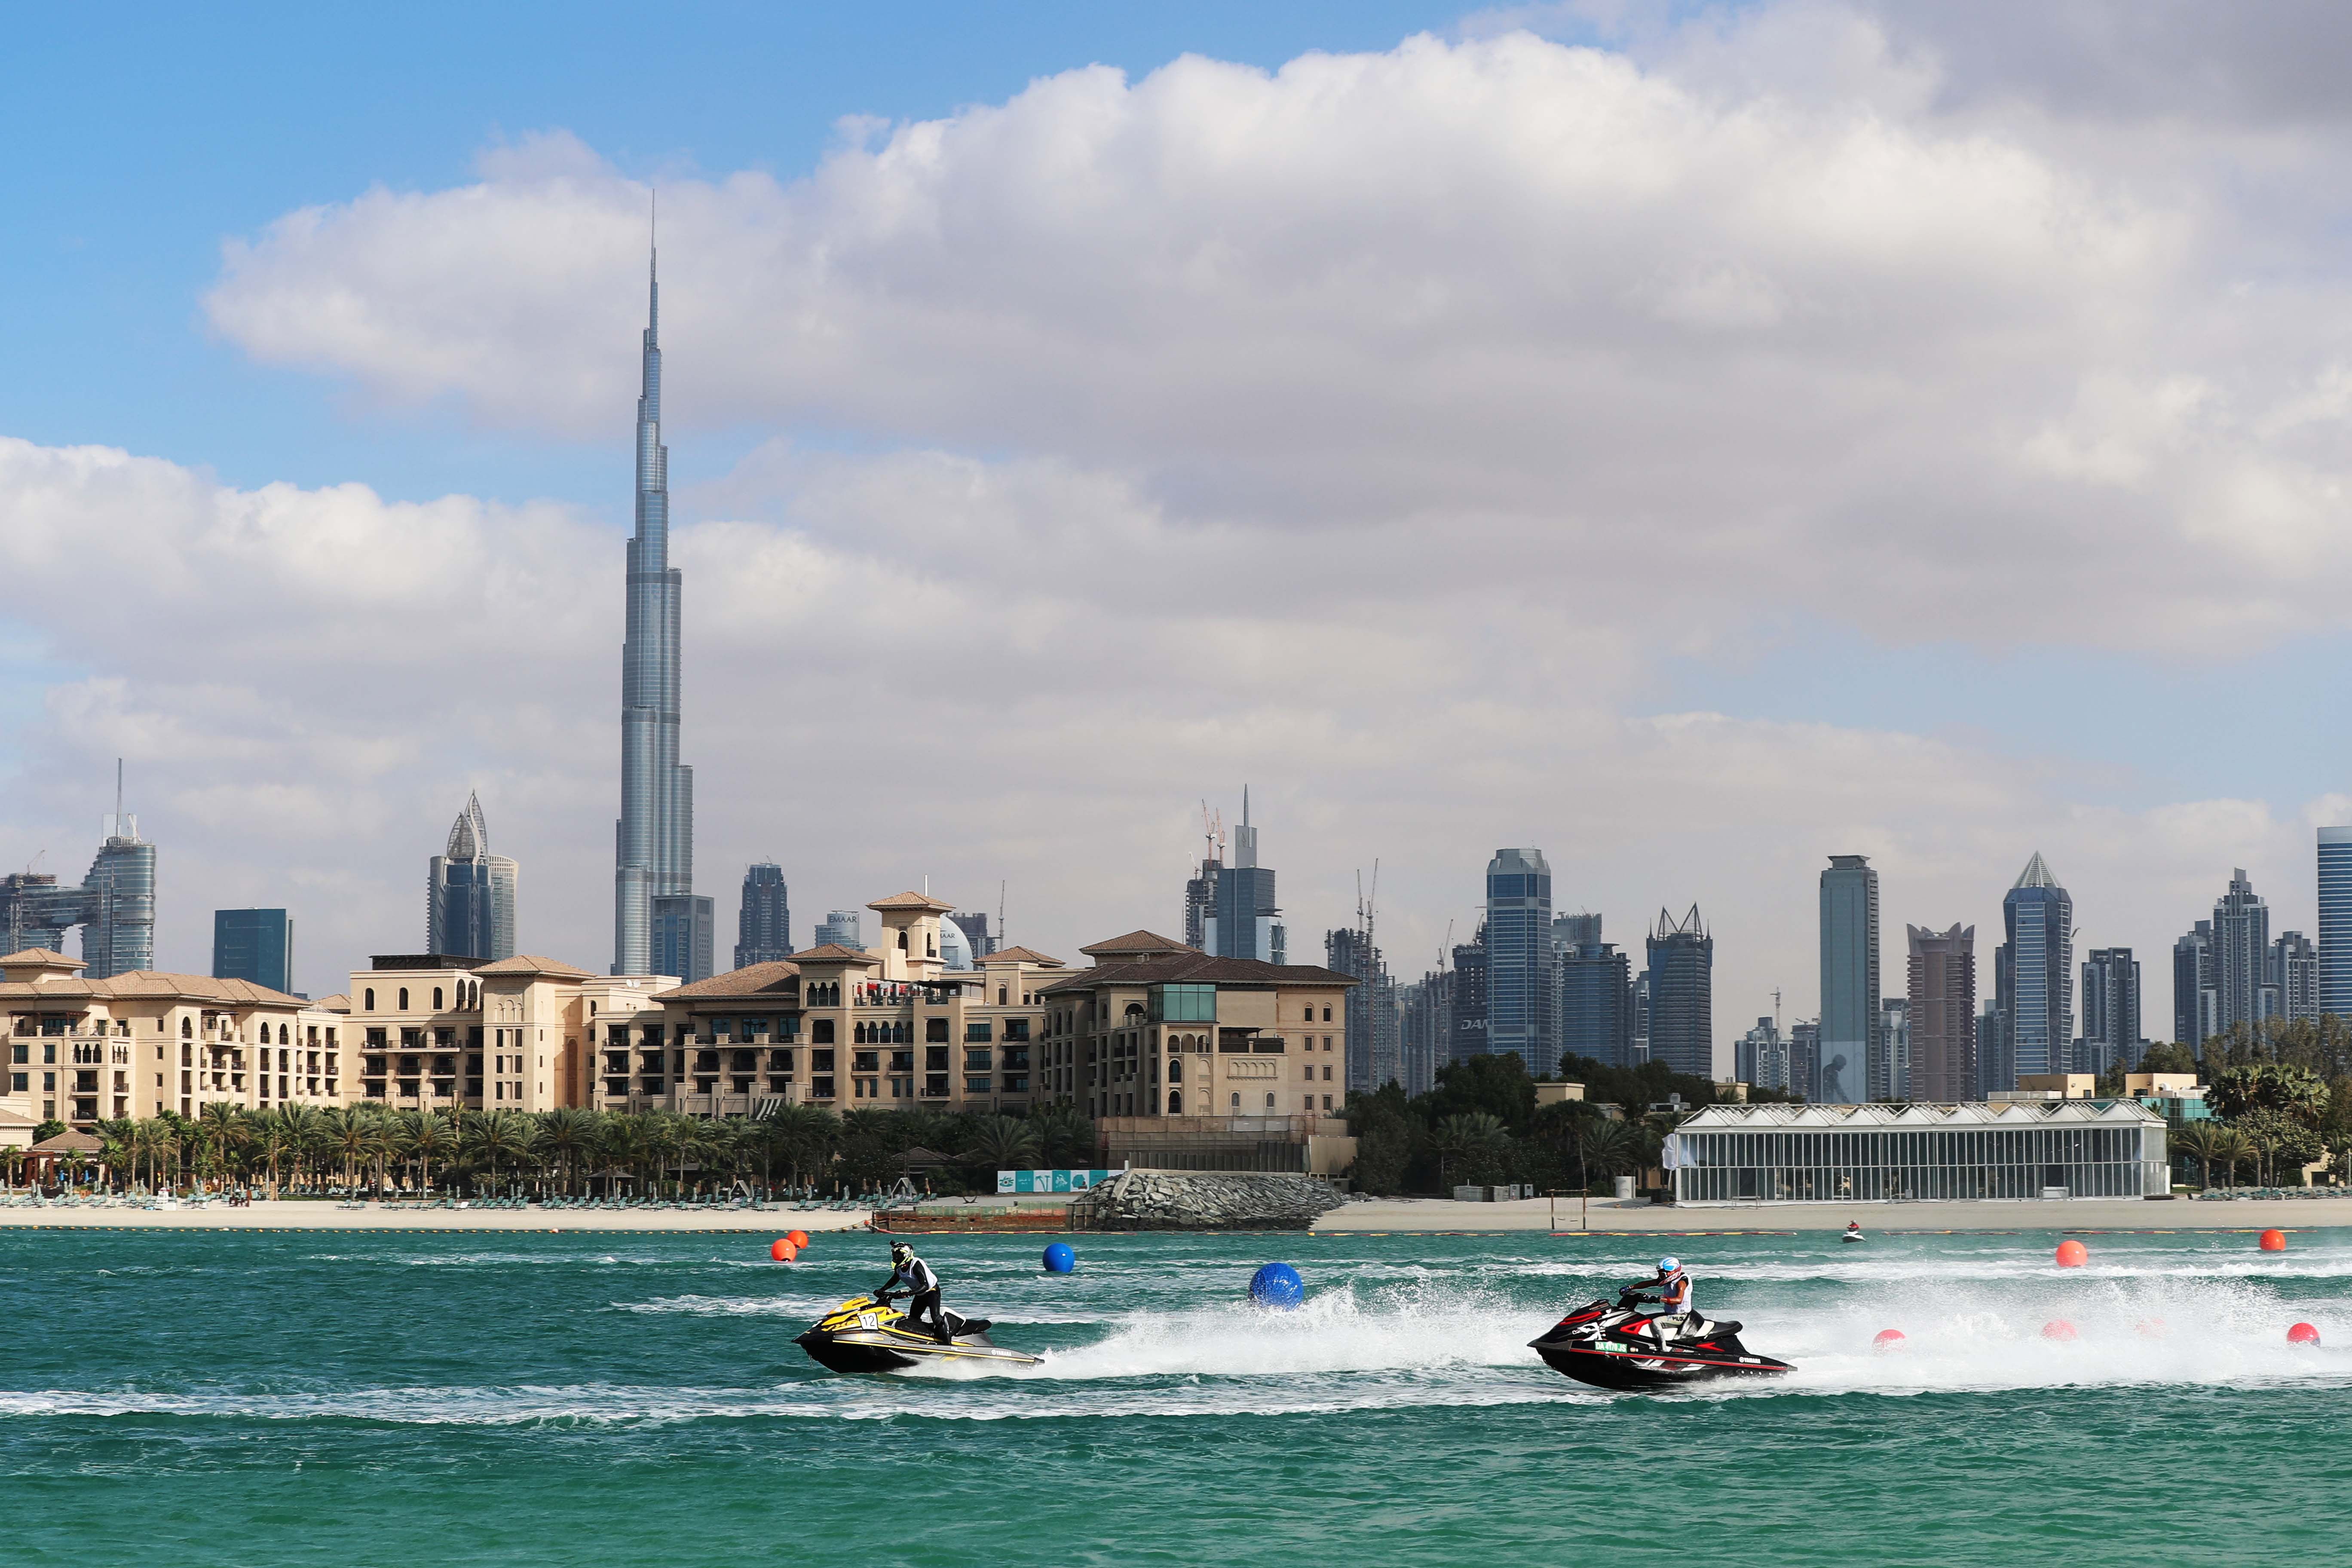 Dubai Aquabike Race at Al Shurooq Beach on Saturday